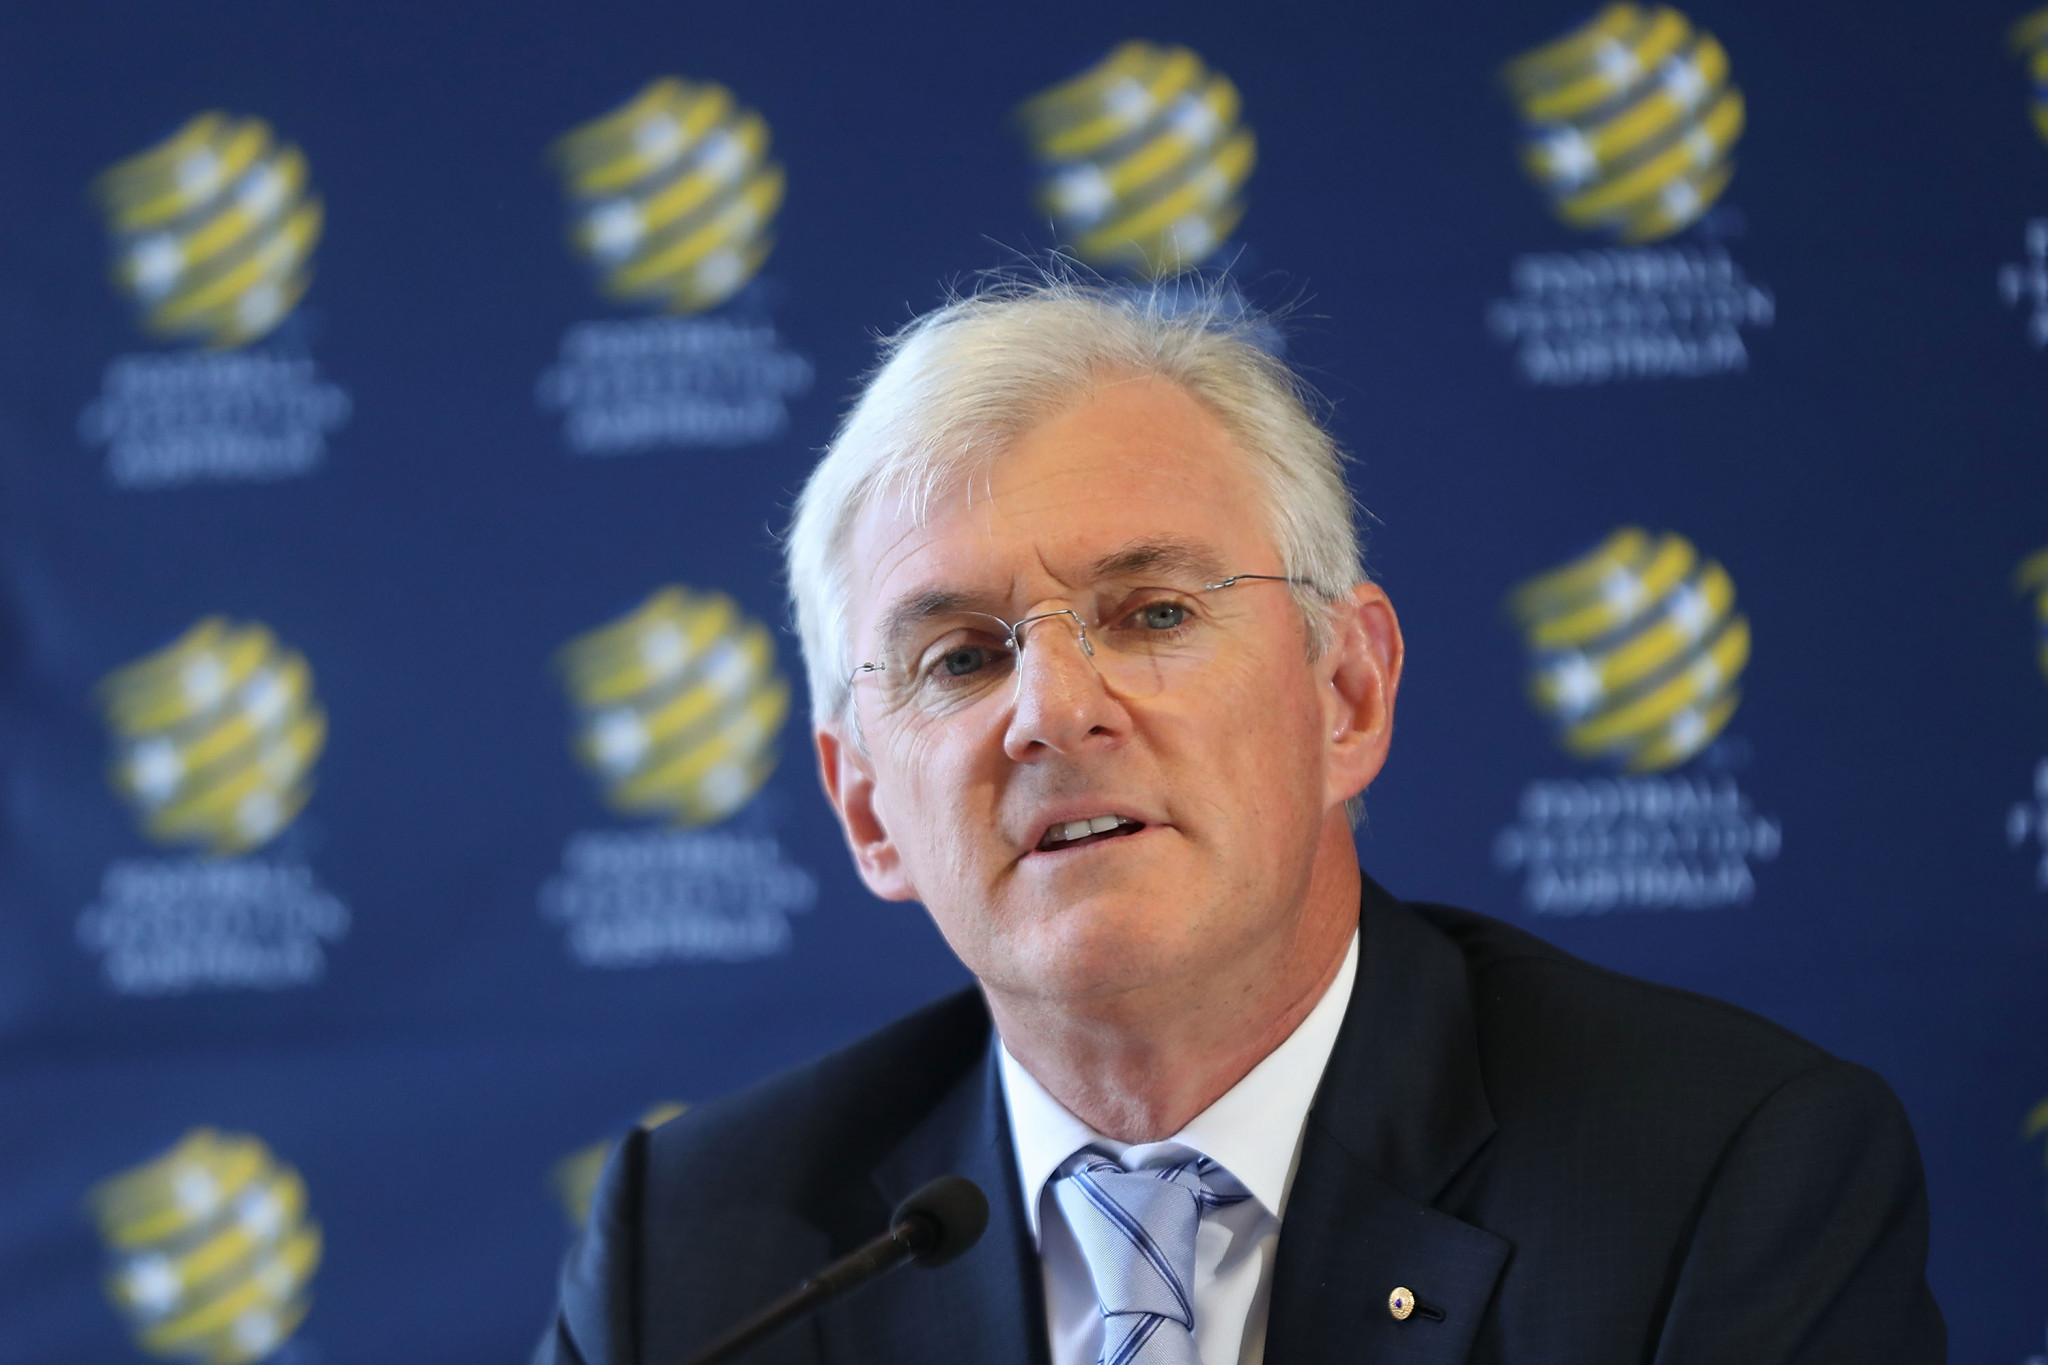 Steven Lowy has criticised some of the proposed changes ©Getty Images